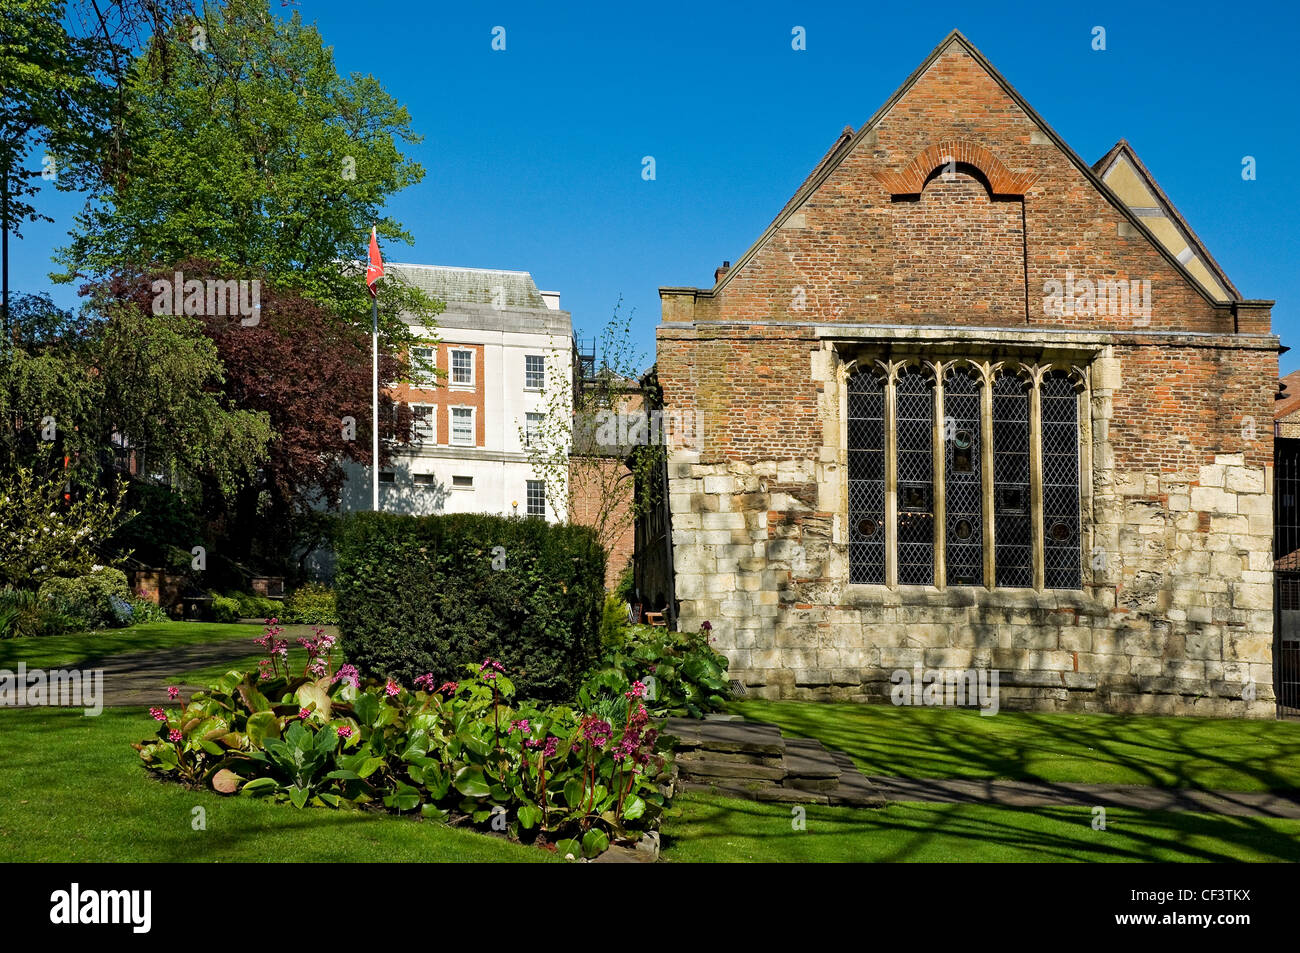 Merchant Adventurers' Hall, built in the 14th century as a place for medieval merchants to conduct business - Stock Image